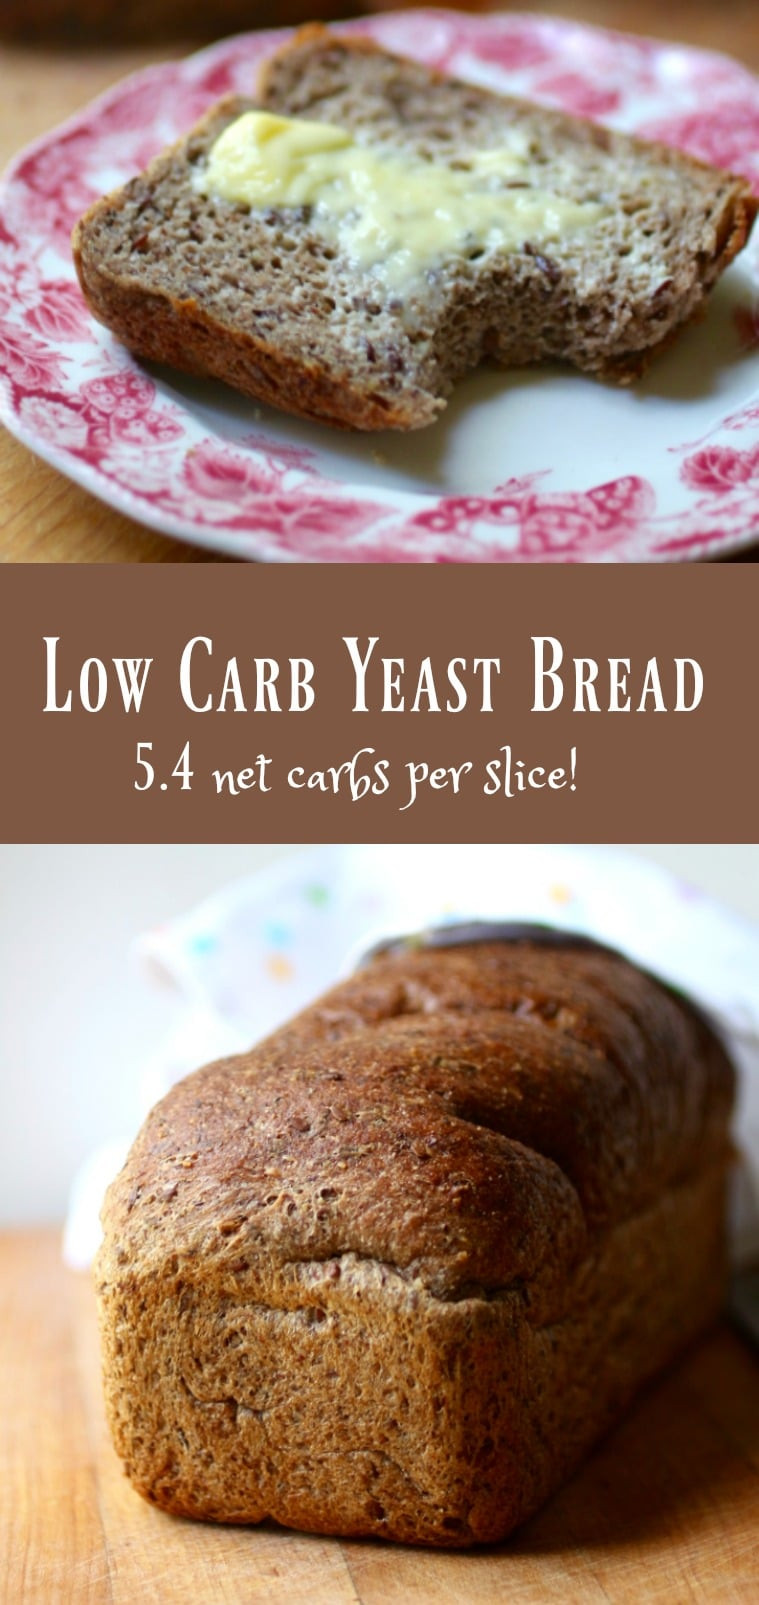 Low Carb Bread Recipes  Low Carb Yeast Bread Keto Sandwich Bread lowcarb ology